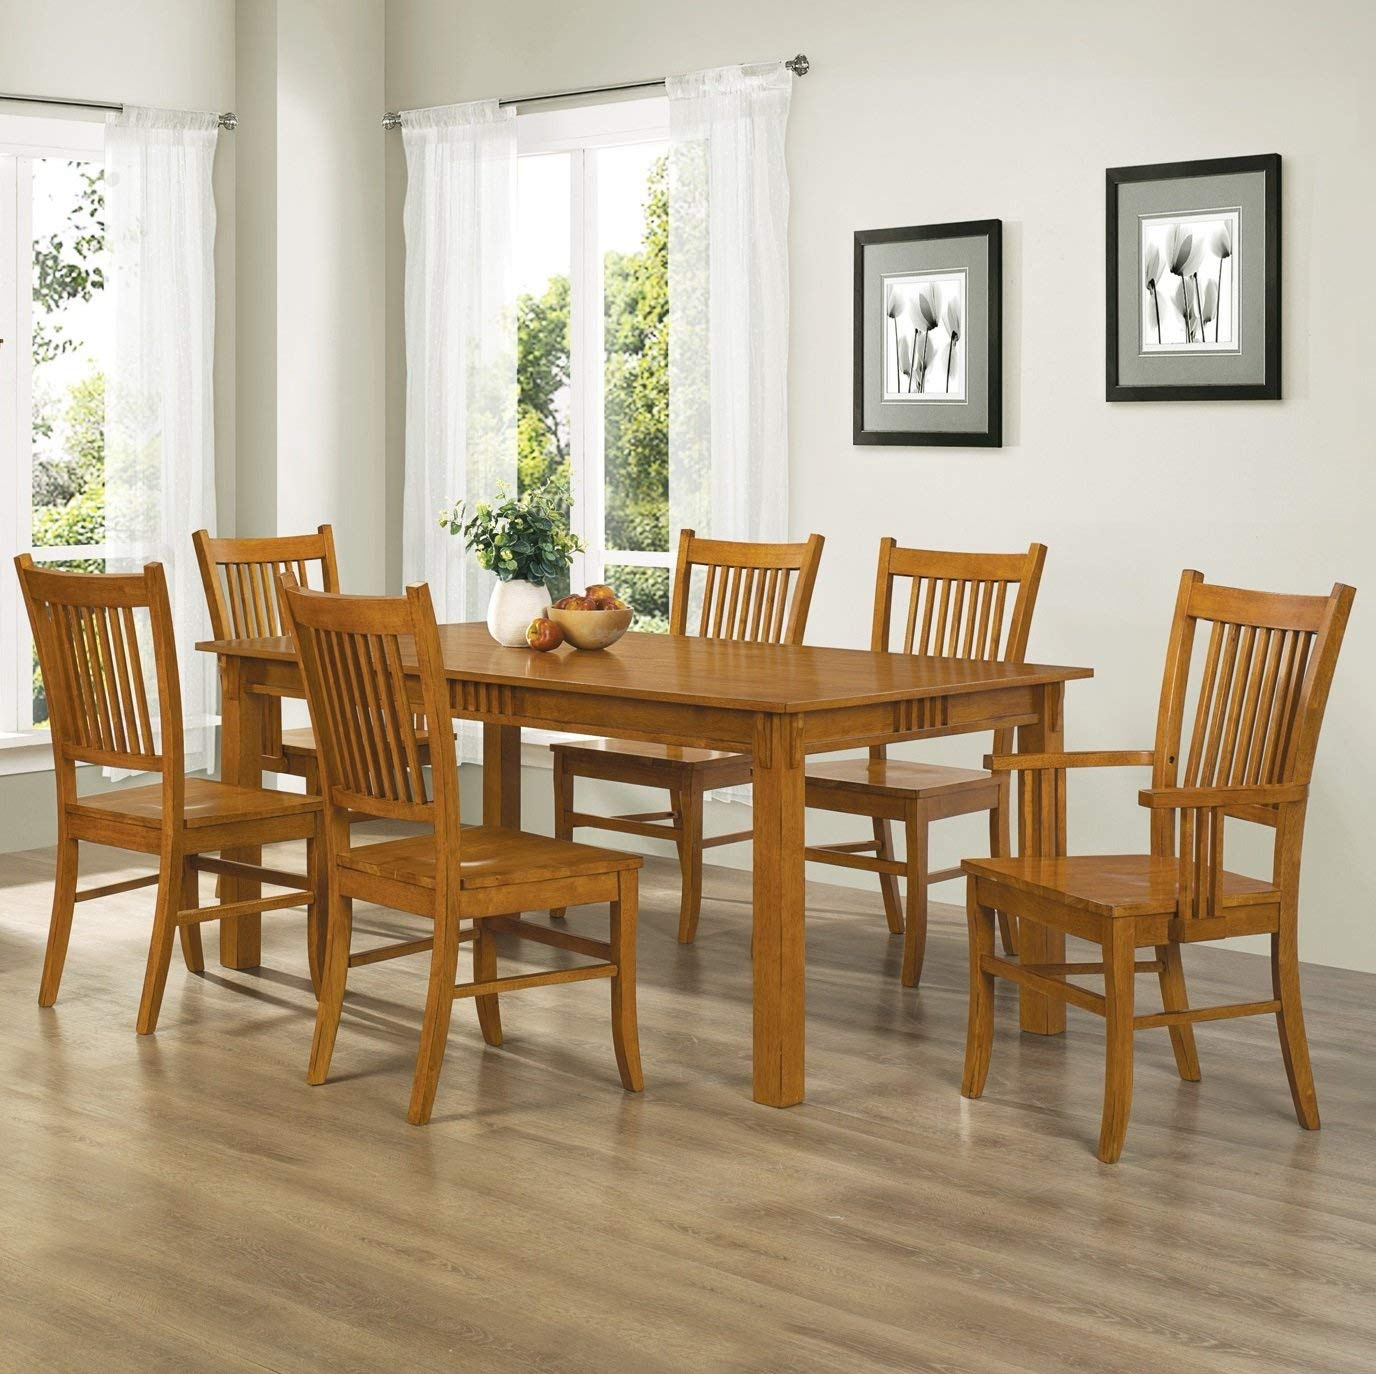 The Best Dining Table Sets With Chairs In 2019 Trendy